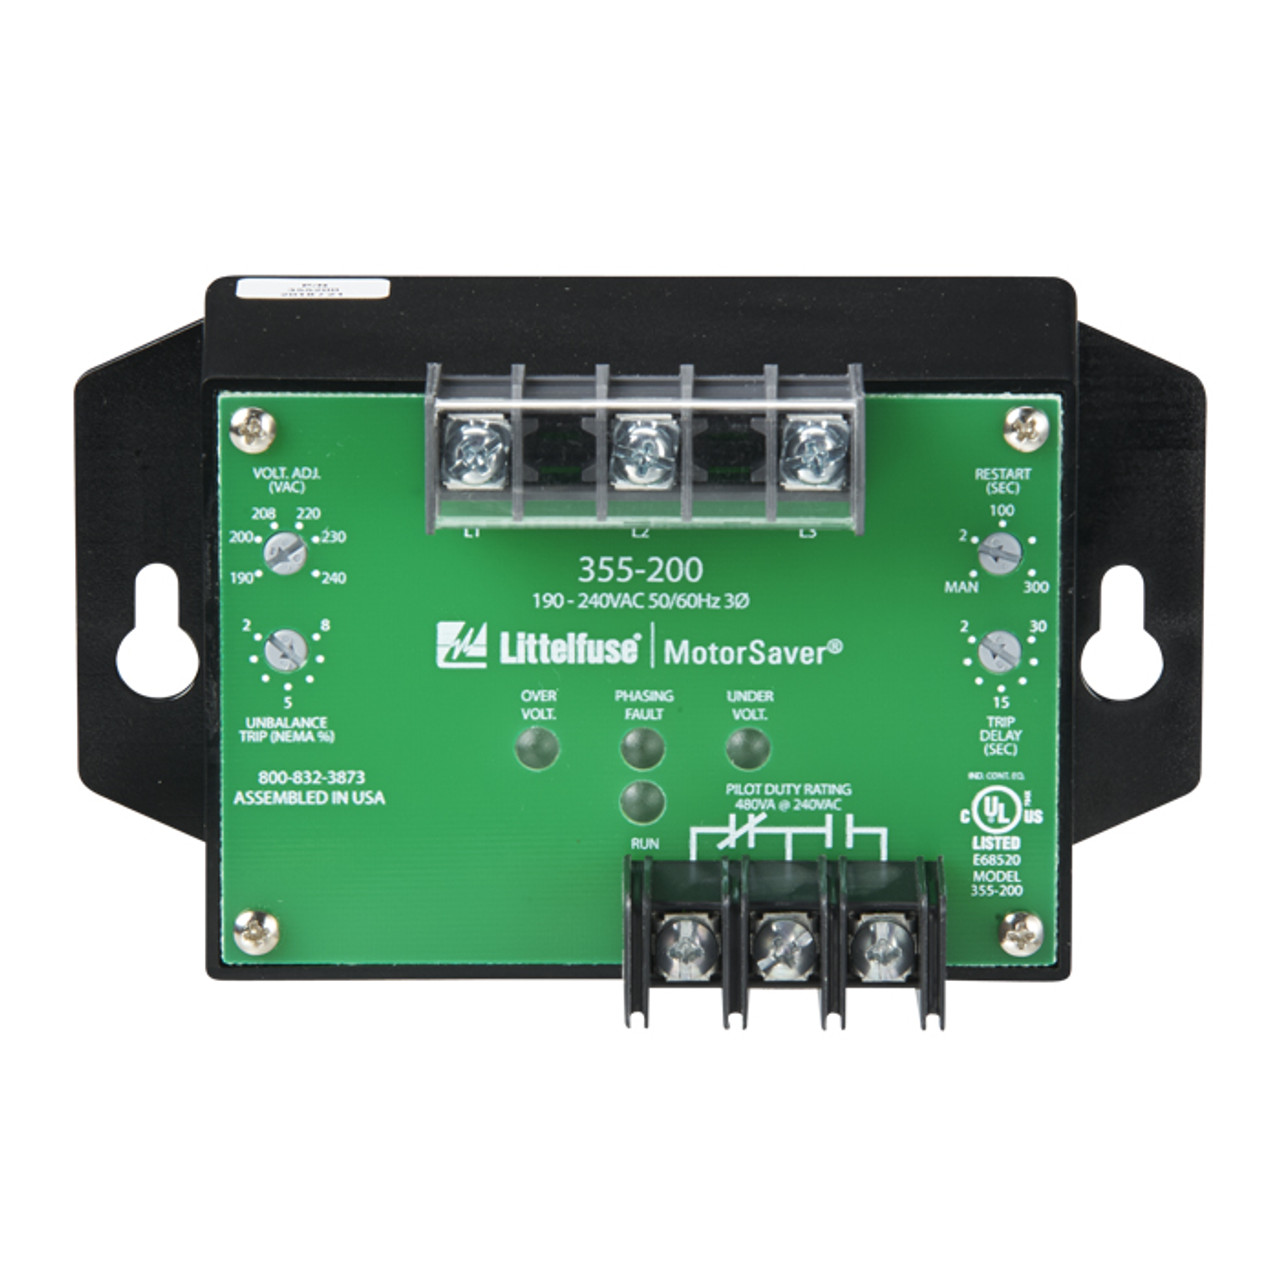 3-PHASE VOLTAGE MONITOR 190 to 240VAC